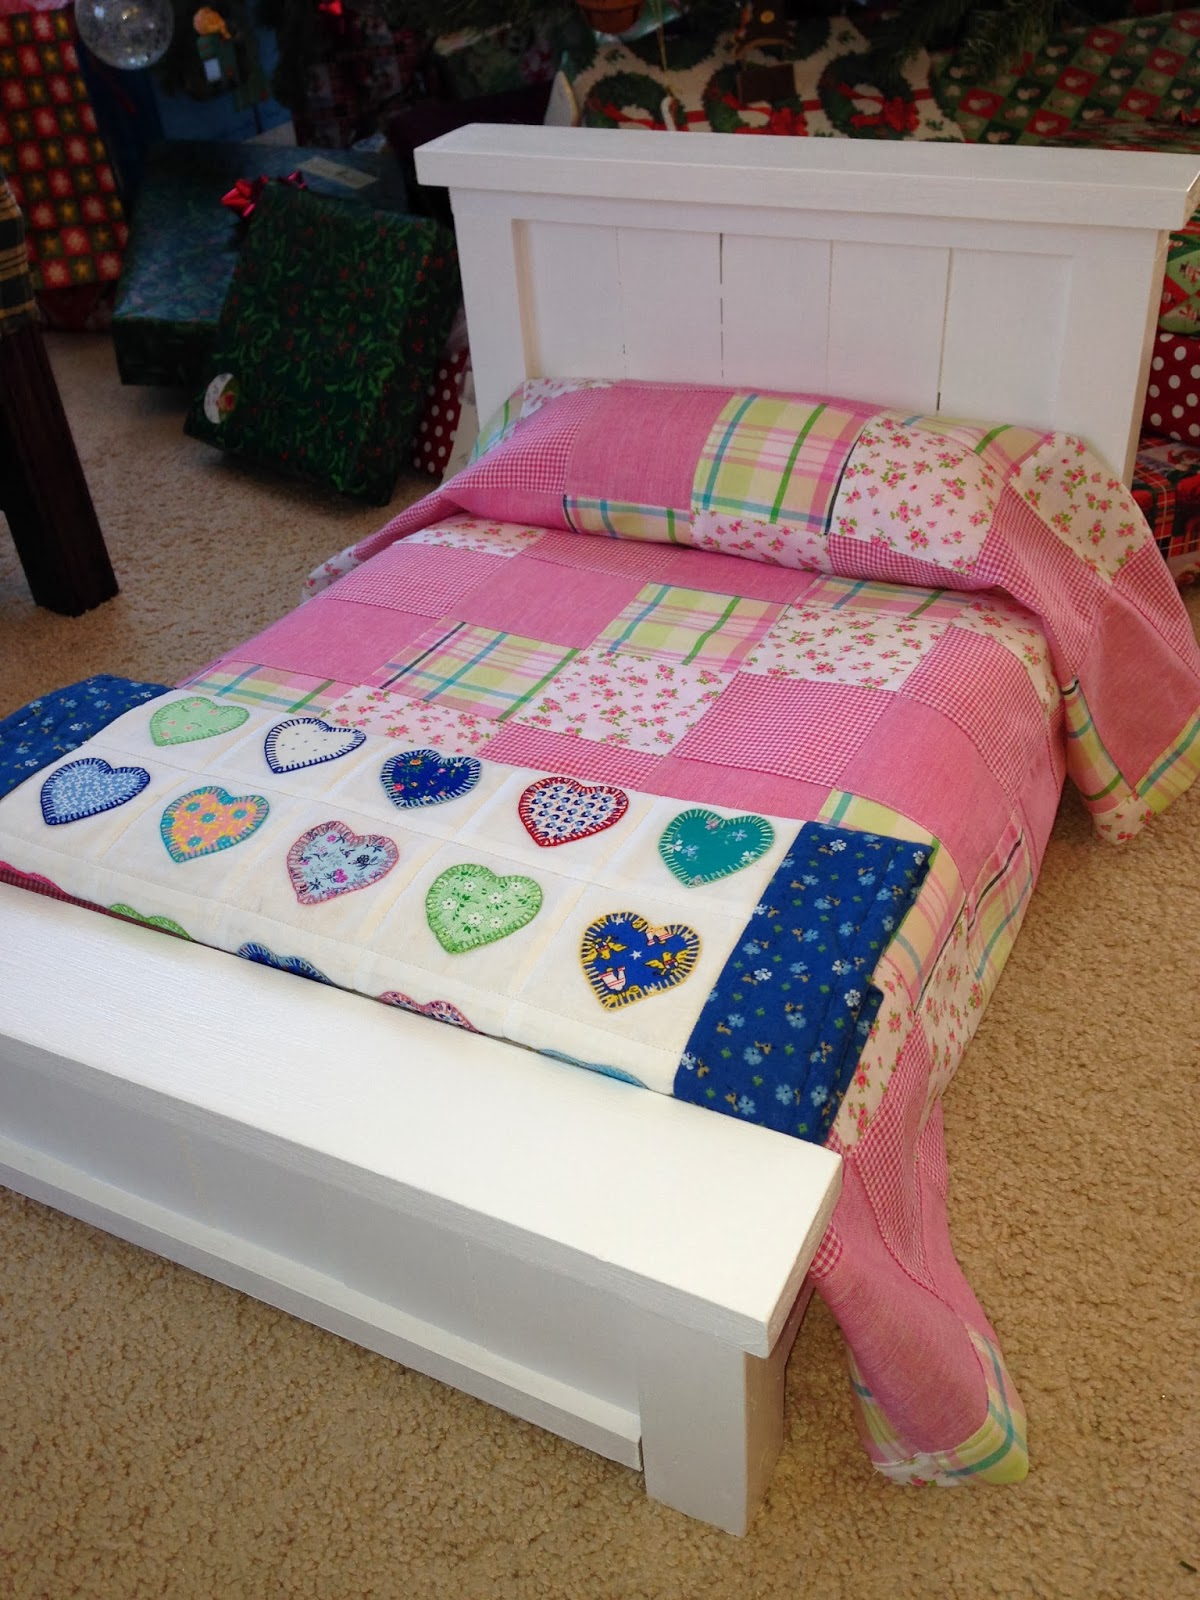 Do It Yourself Home Design: Celtic Heart Knitting And Quilting: American Girl Doll Bed